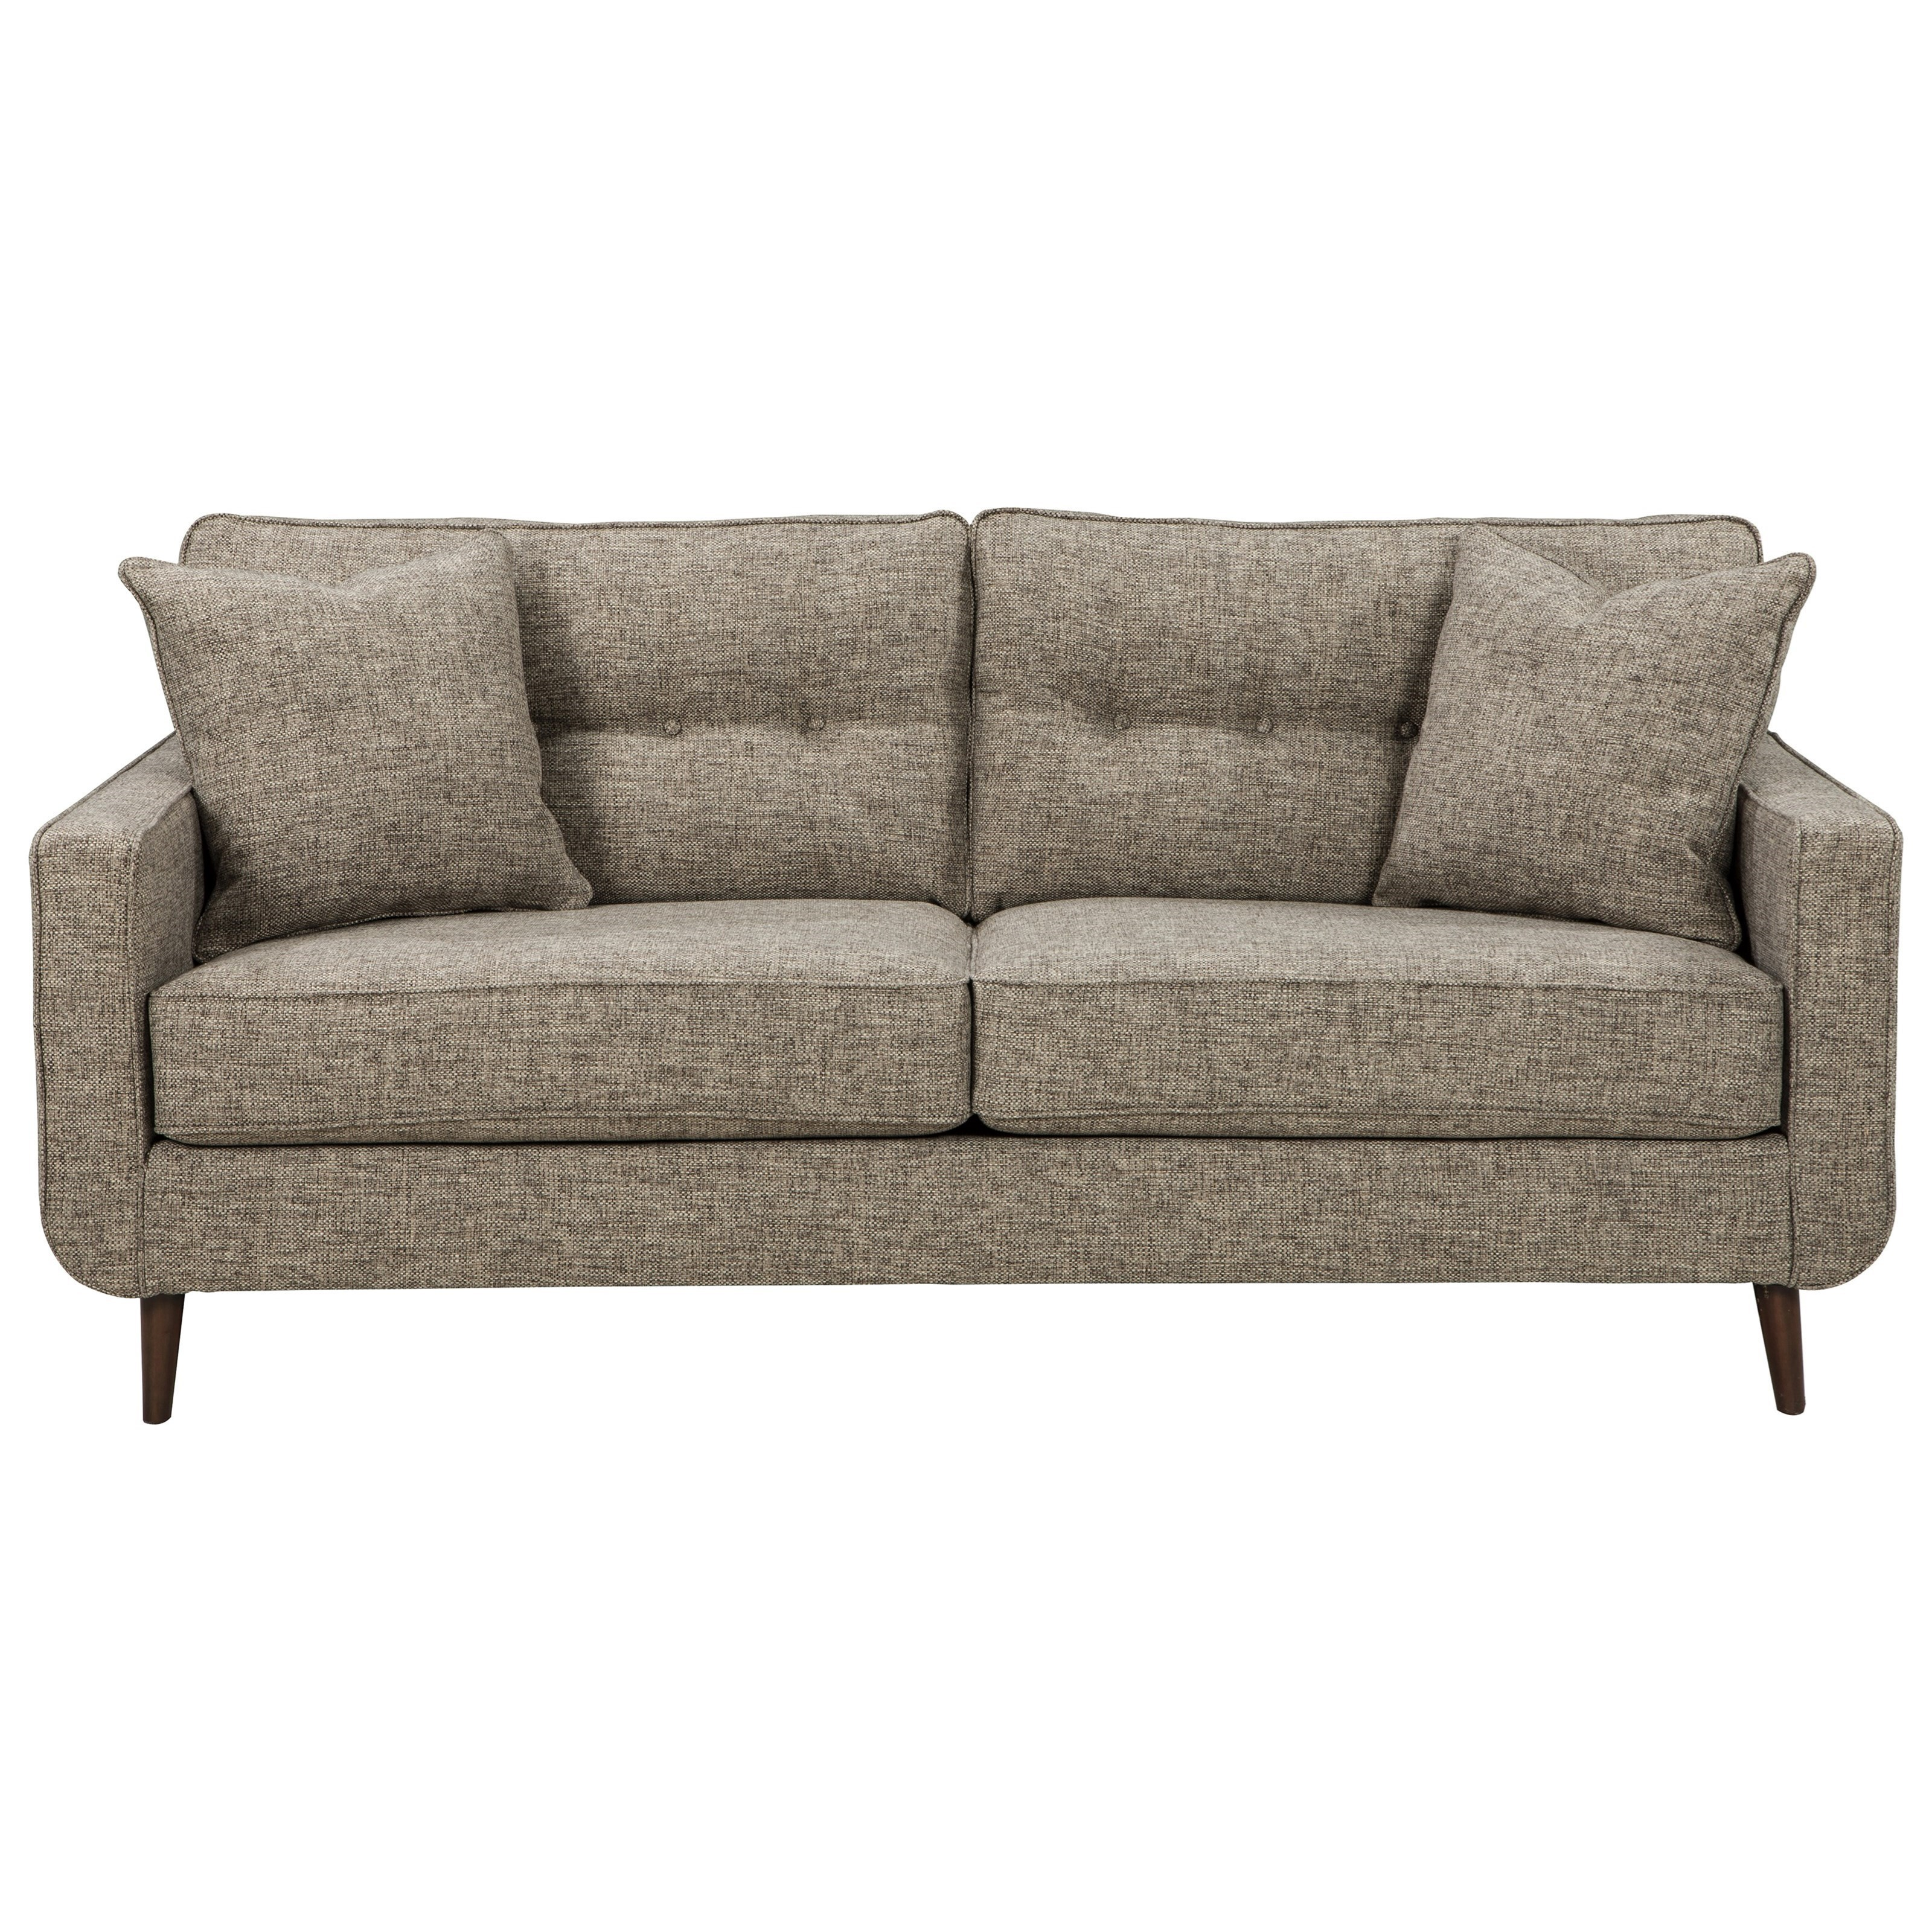 Benchcraft Dahra Mid-Century Modern Sofa - Furniture Options New